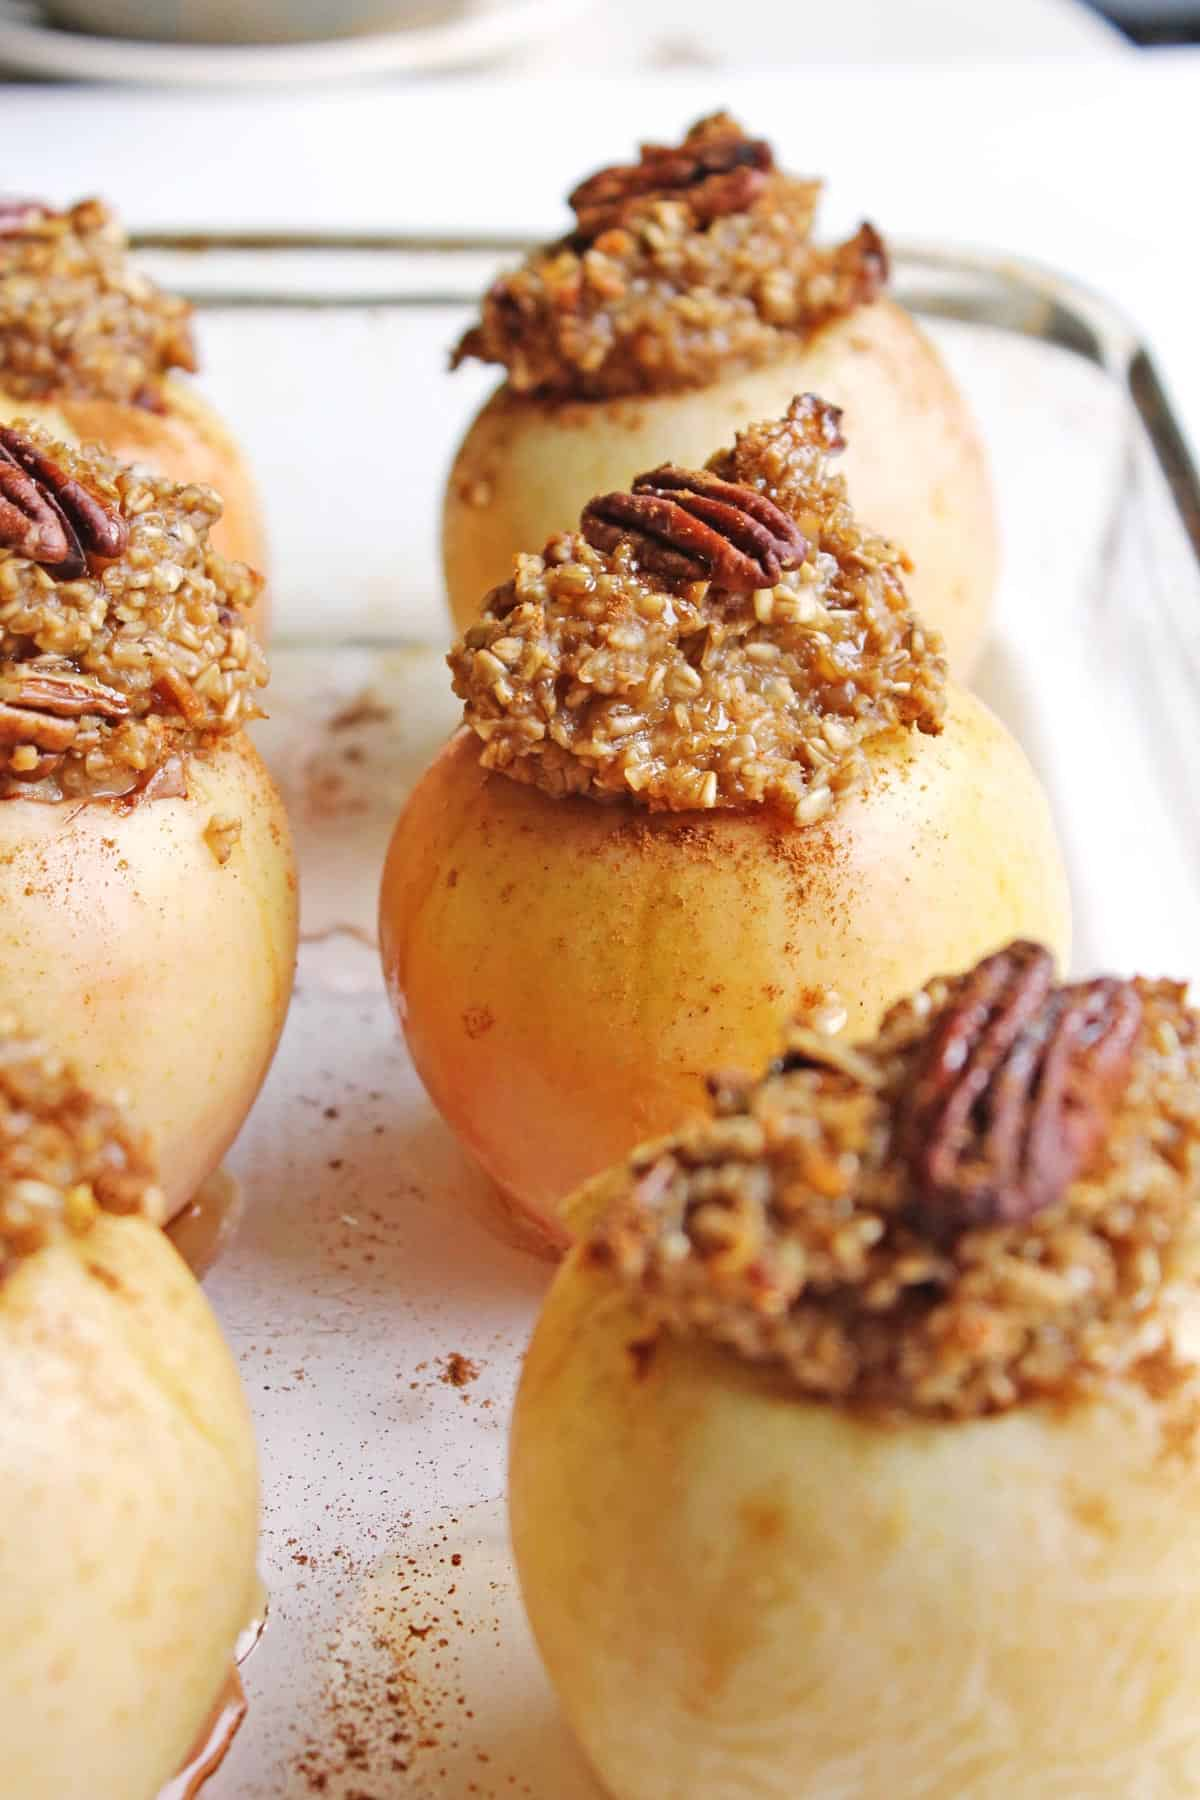 Oatmeal baked apples